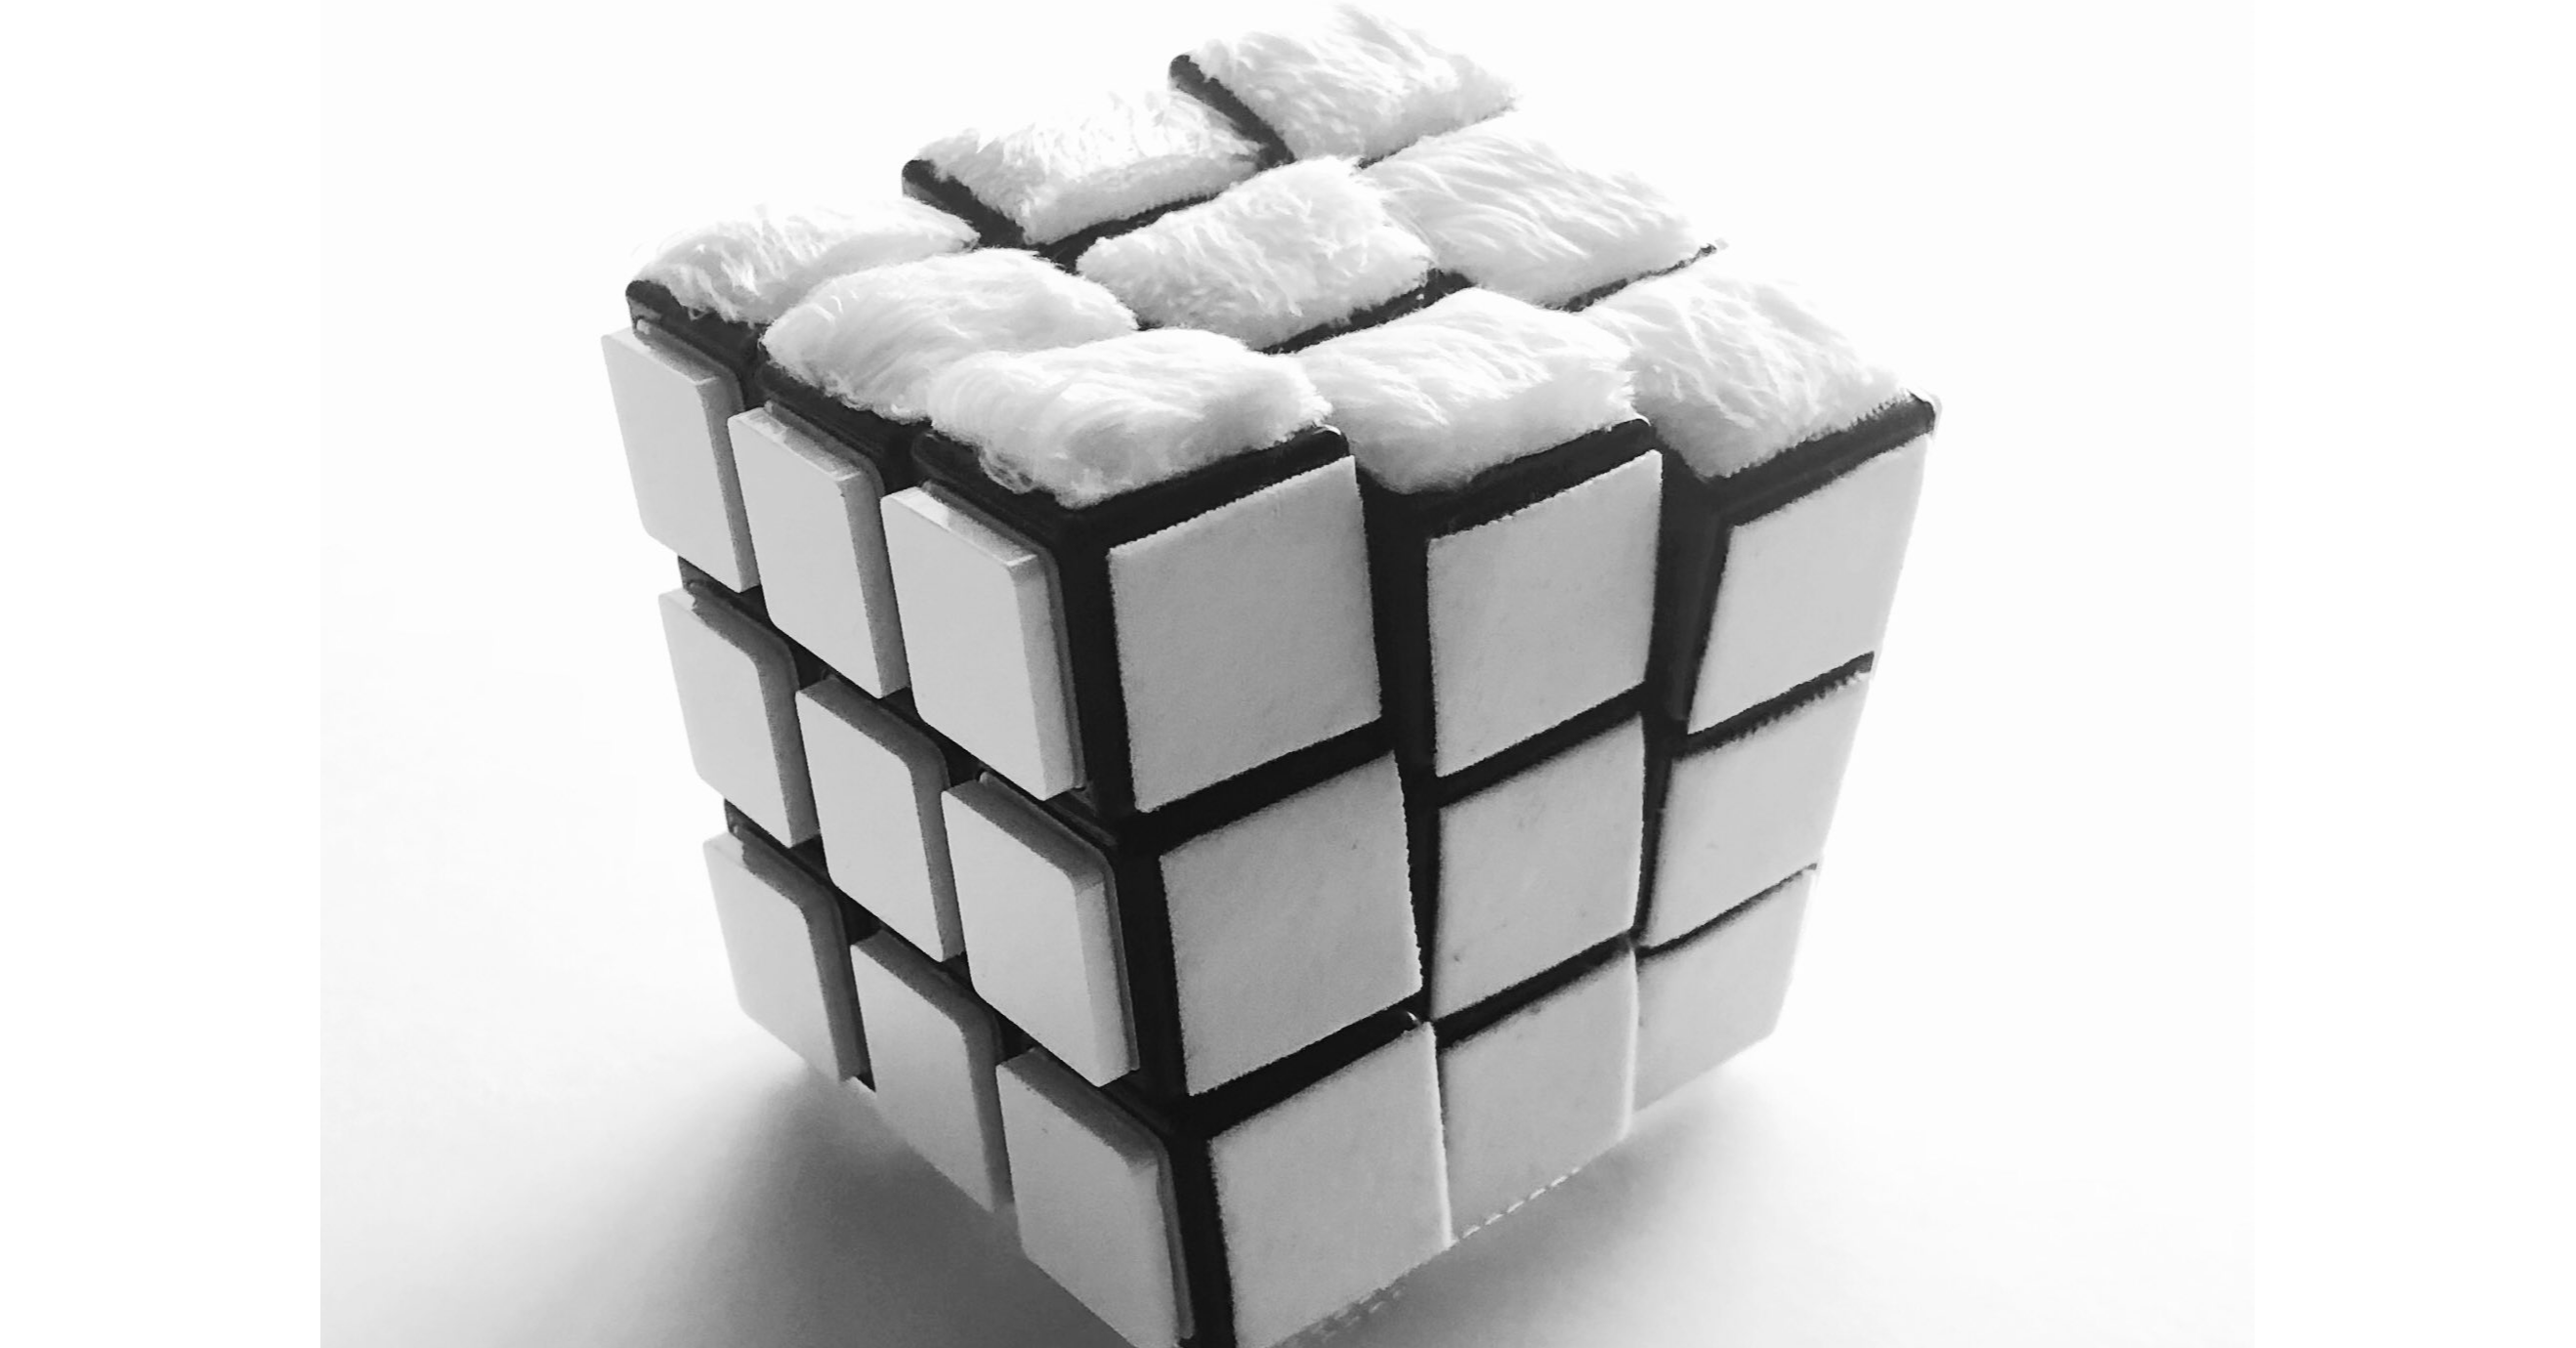 Product, Product design, Angle, Design, angle, White, Rubik's cube, Toy, Mechanical puzzle, Puzzle, Rectangle, Square